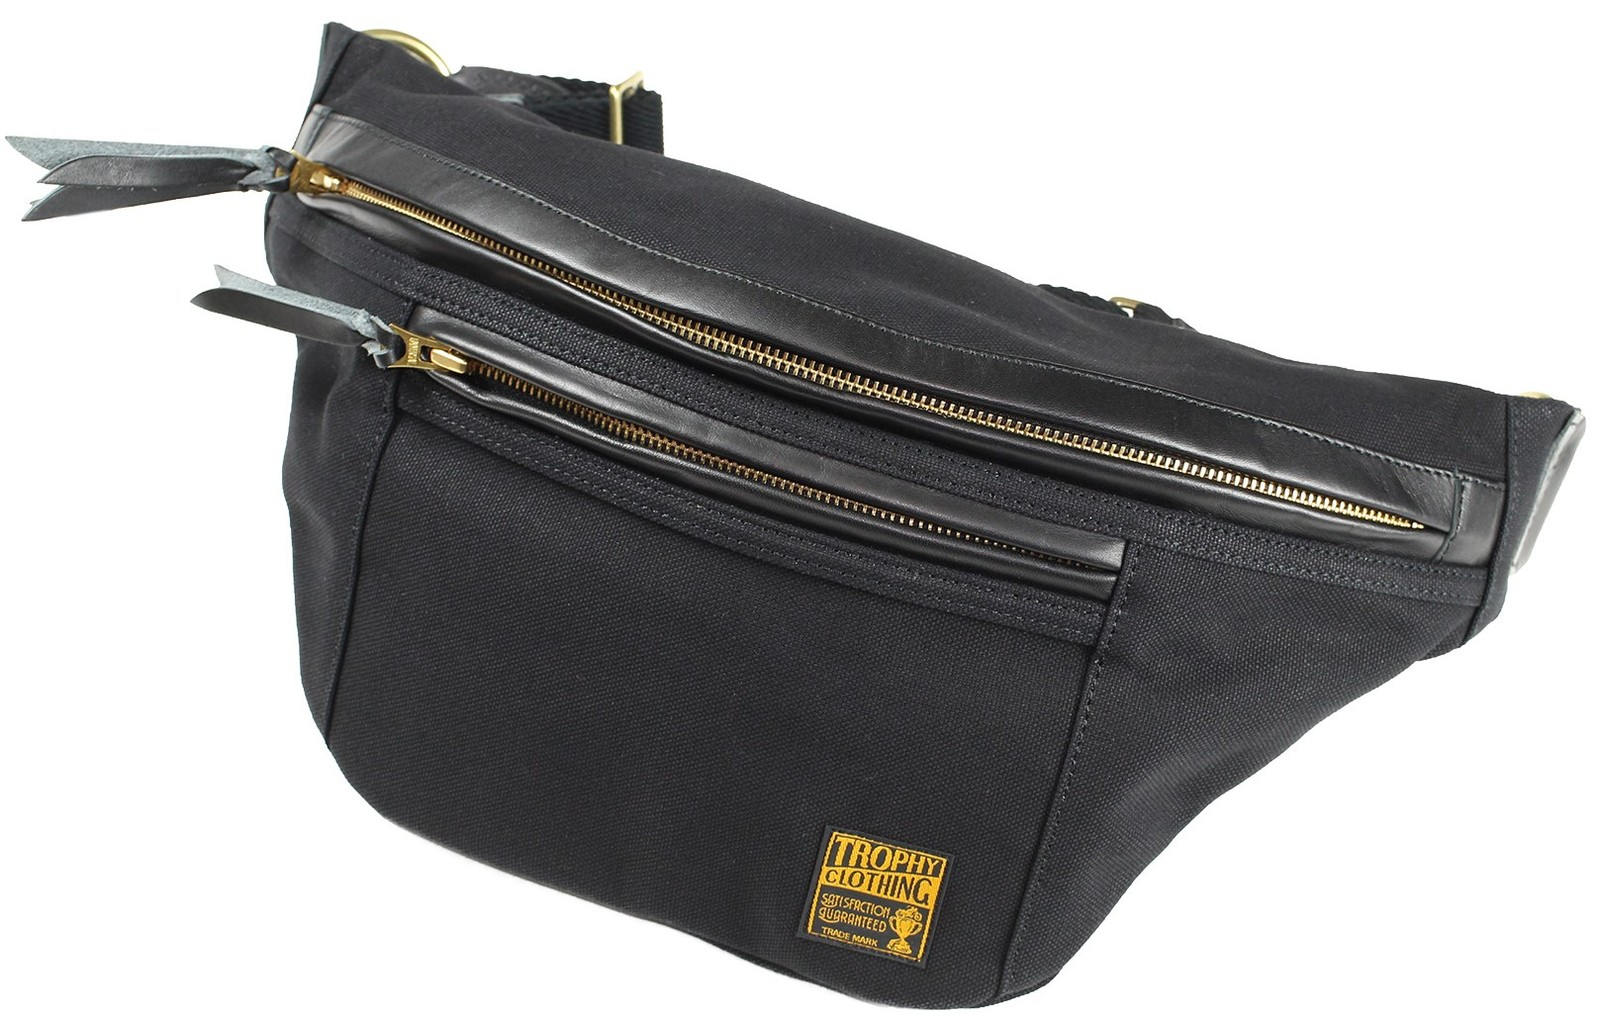 TROPHY CLOTHING [-Day Trip Bag- Black]